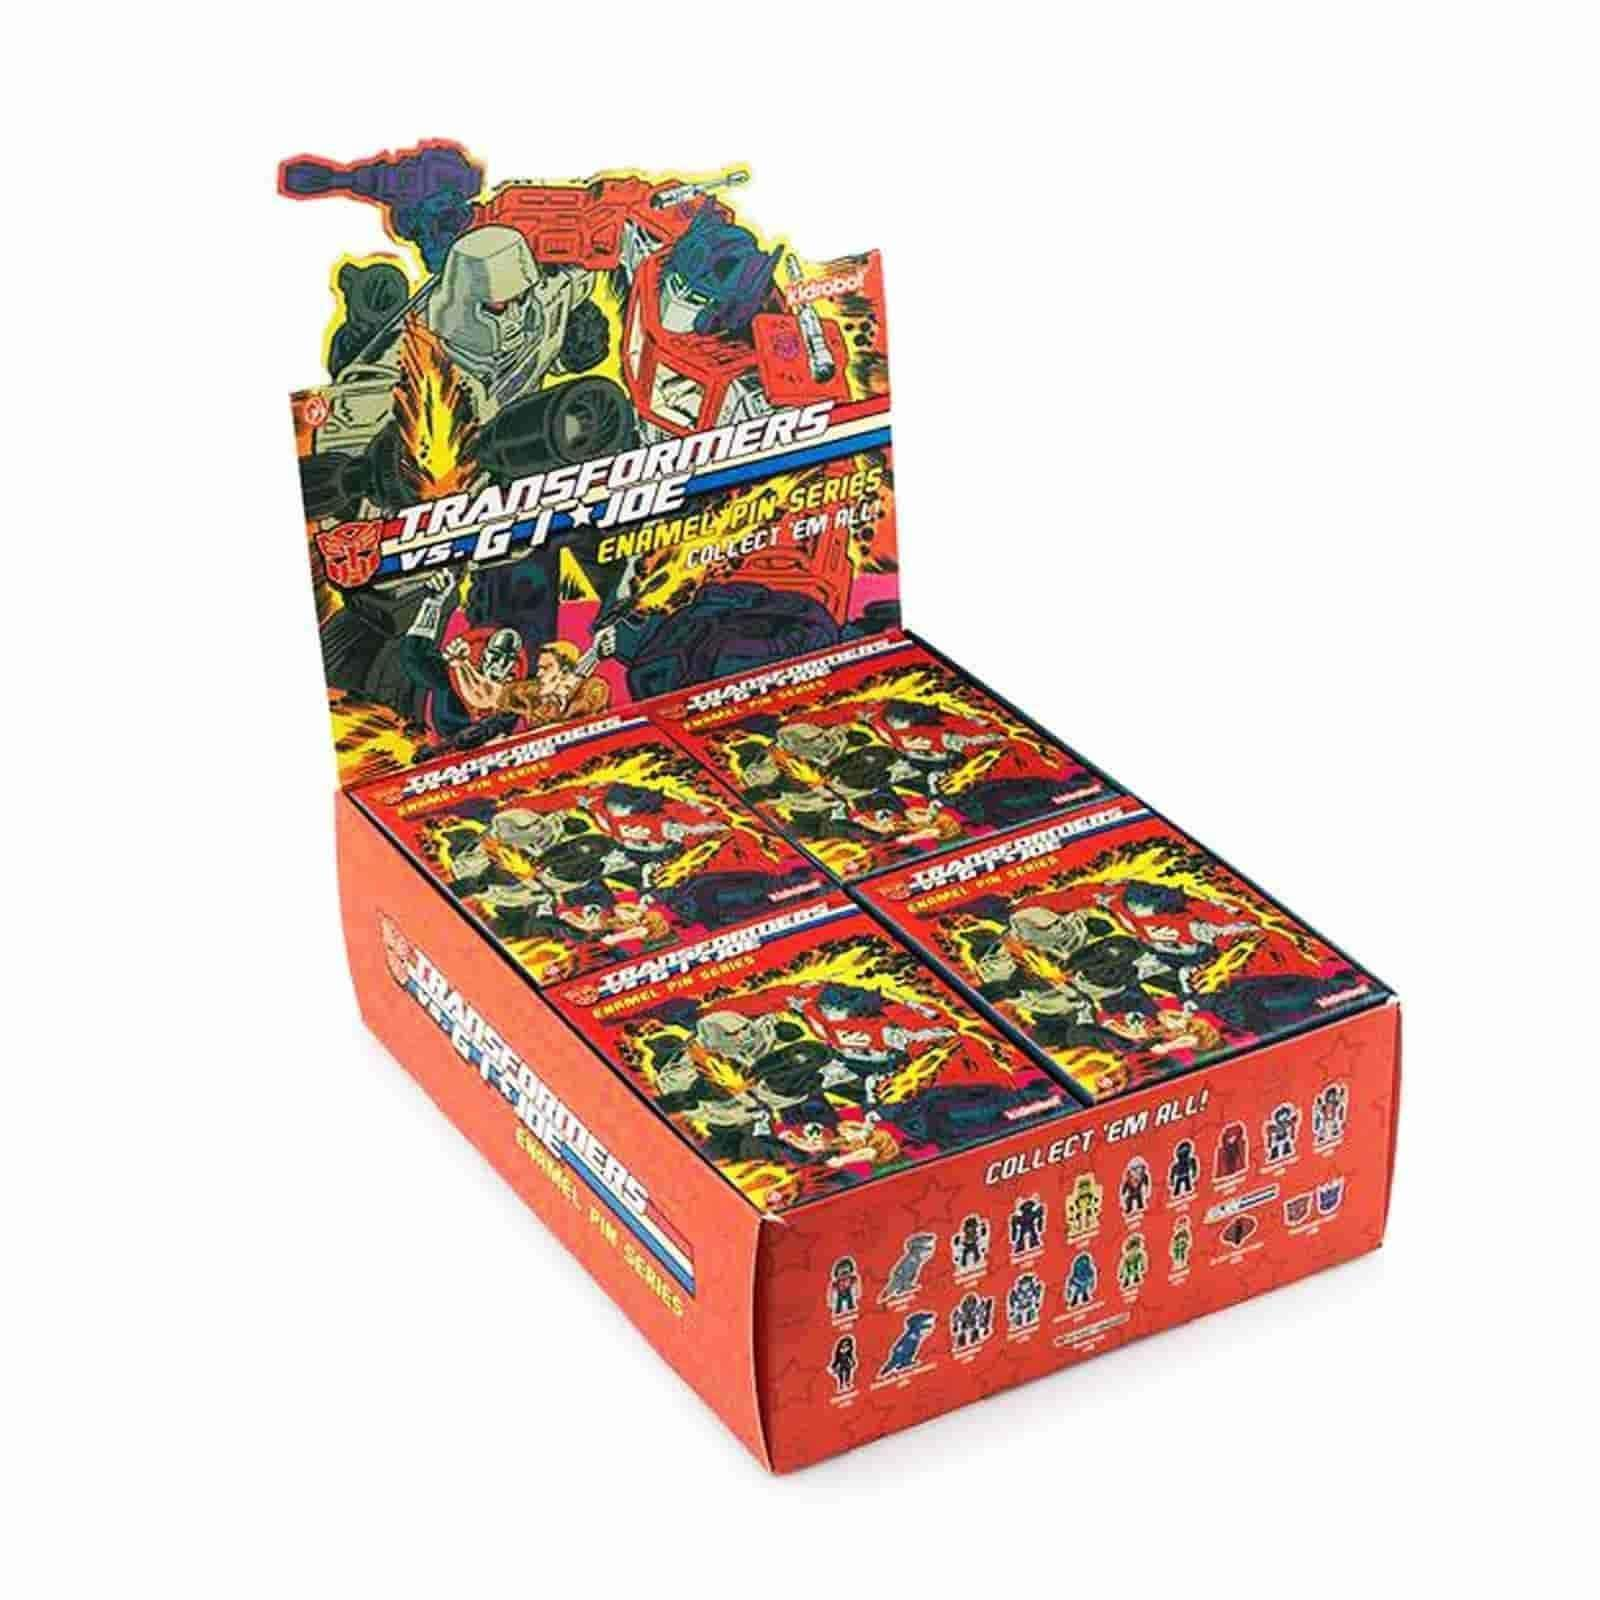 Transformers Vs. G.I. Joe Enamel Pin Series Blind Box - IamRetro.com